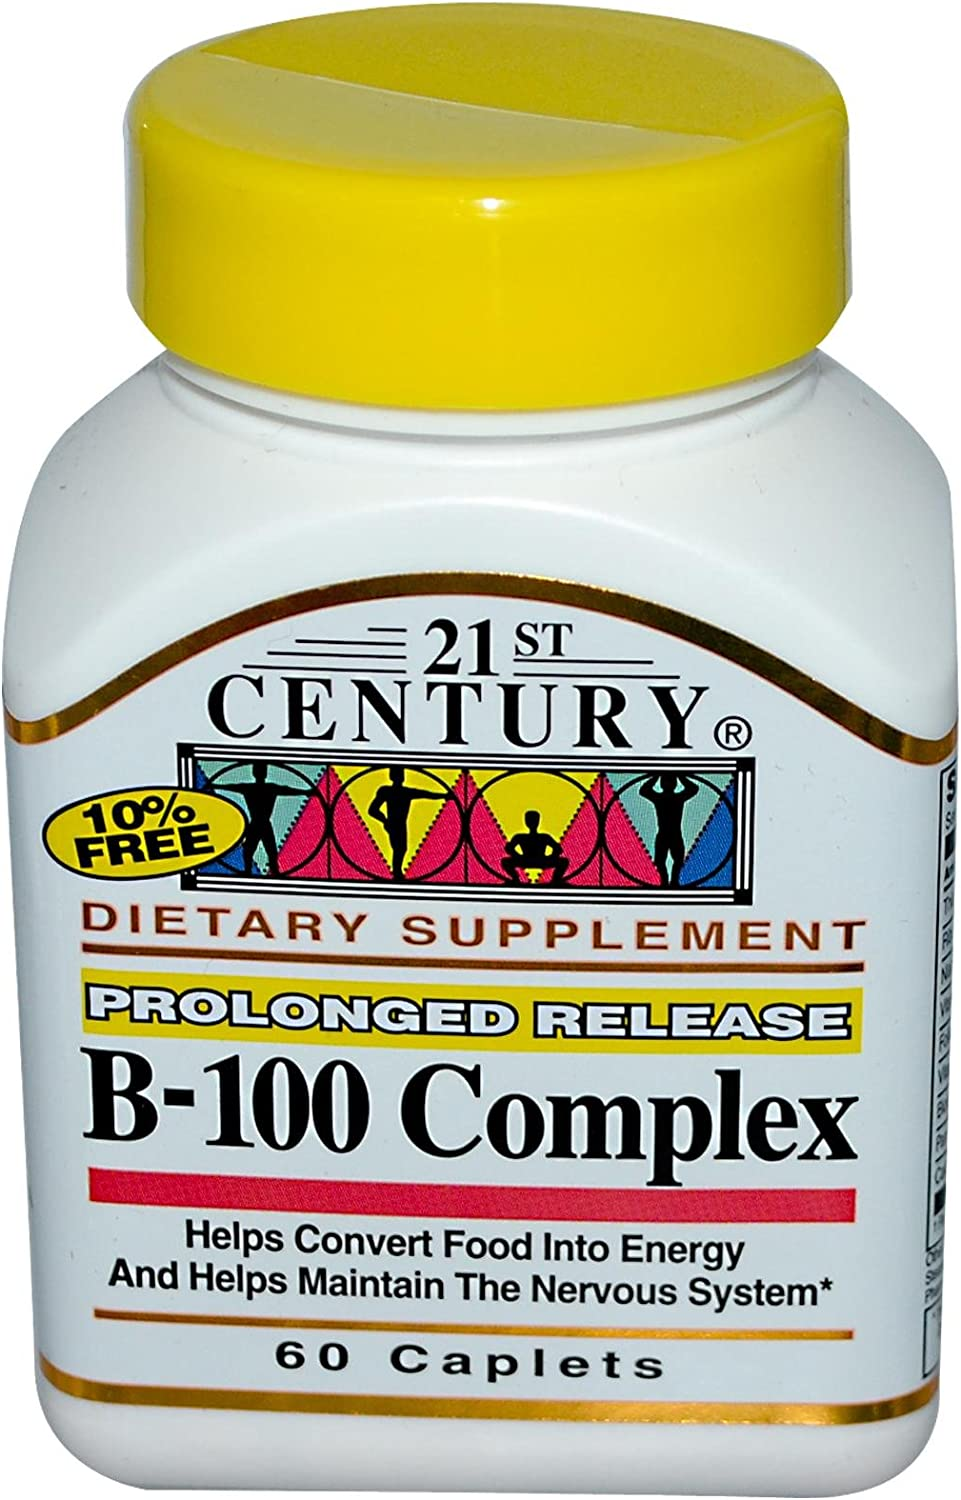 21 ST NEW before selling ☆ Century B-100 Complex 60 Seattle Mall Release TIME CAPS